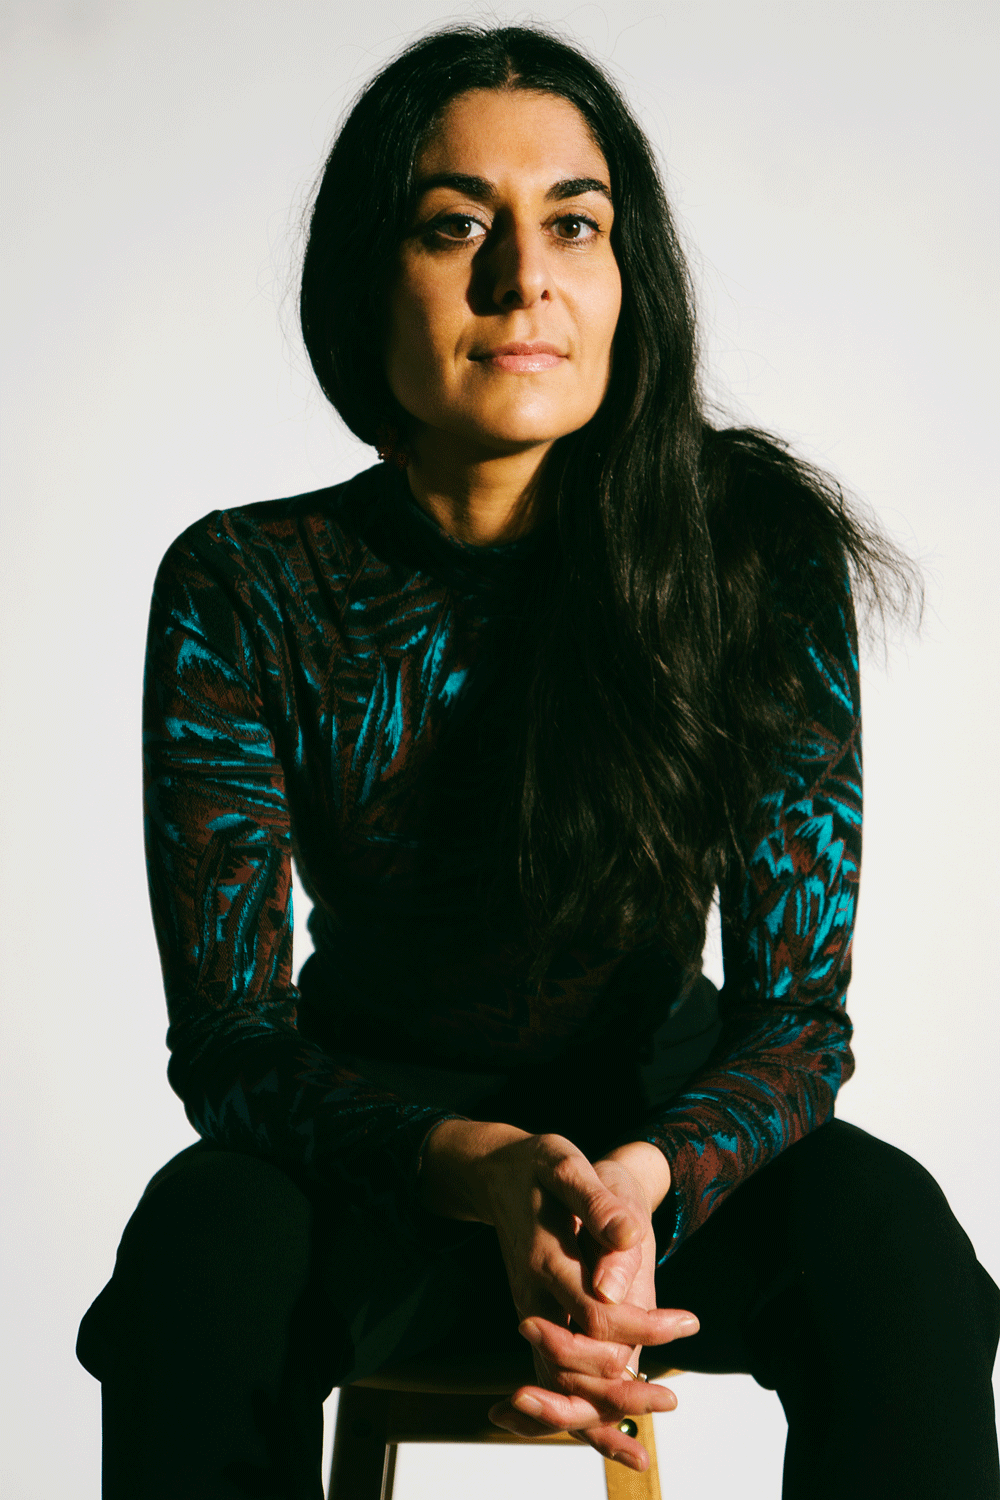 Lana-Seated-Black-and-Blue-top-web.png